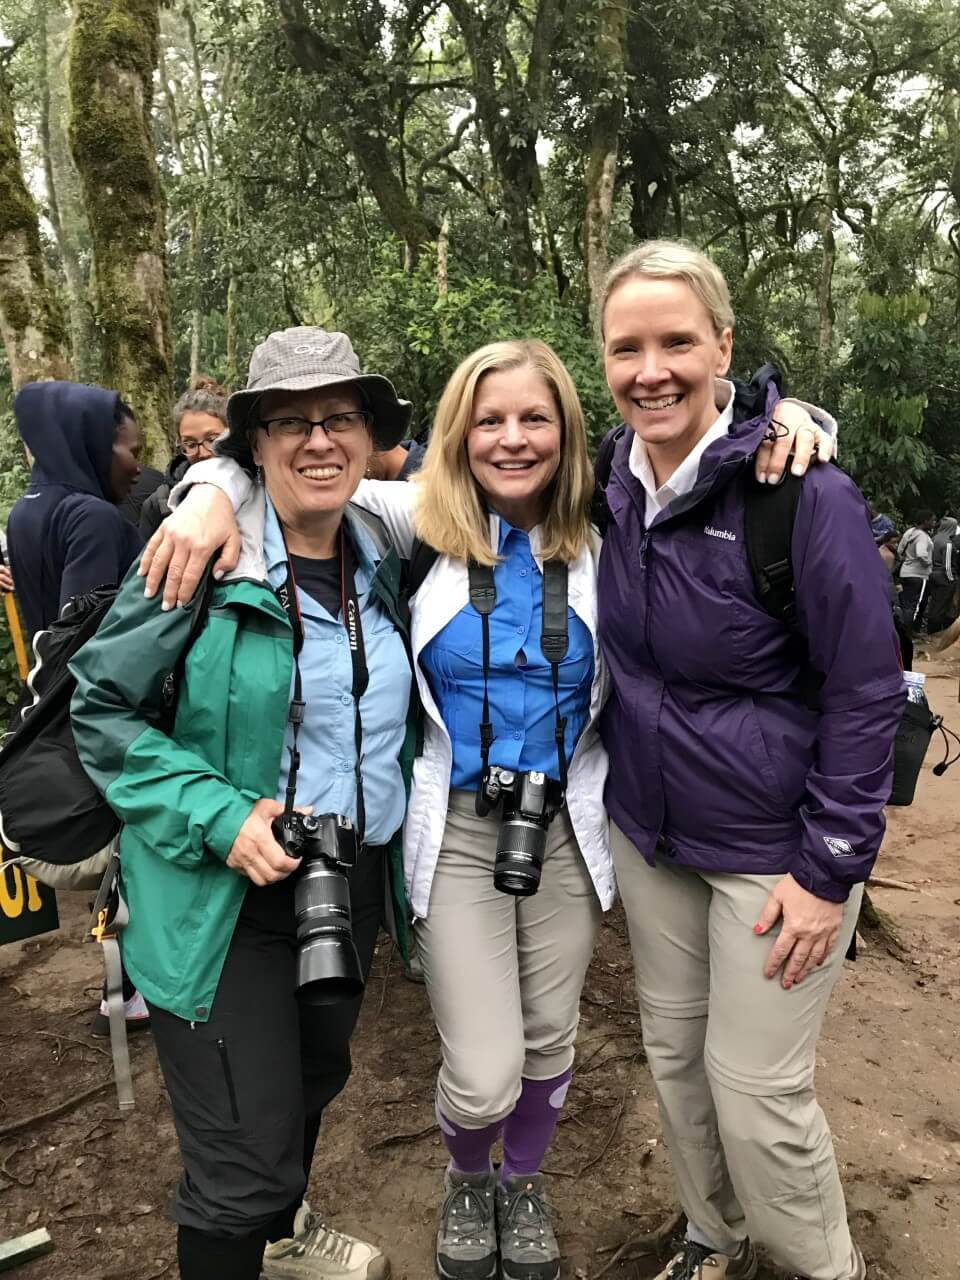 Jeanie, Cheryl and Wendy at the starting point for the mountain gorilla trek in Uganda